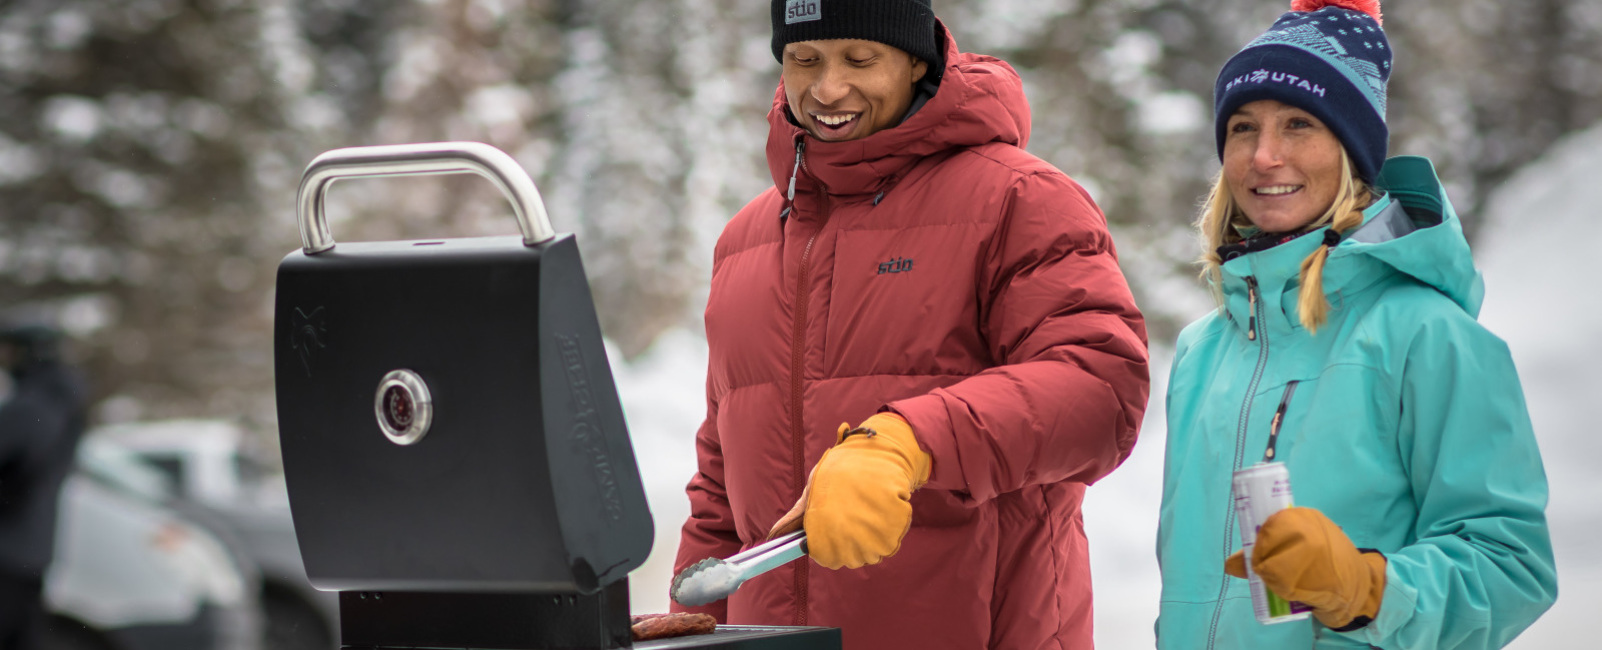 Winter Tailgating Tips: From Basic Necessities to Parking Lot Royalty